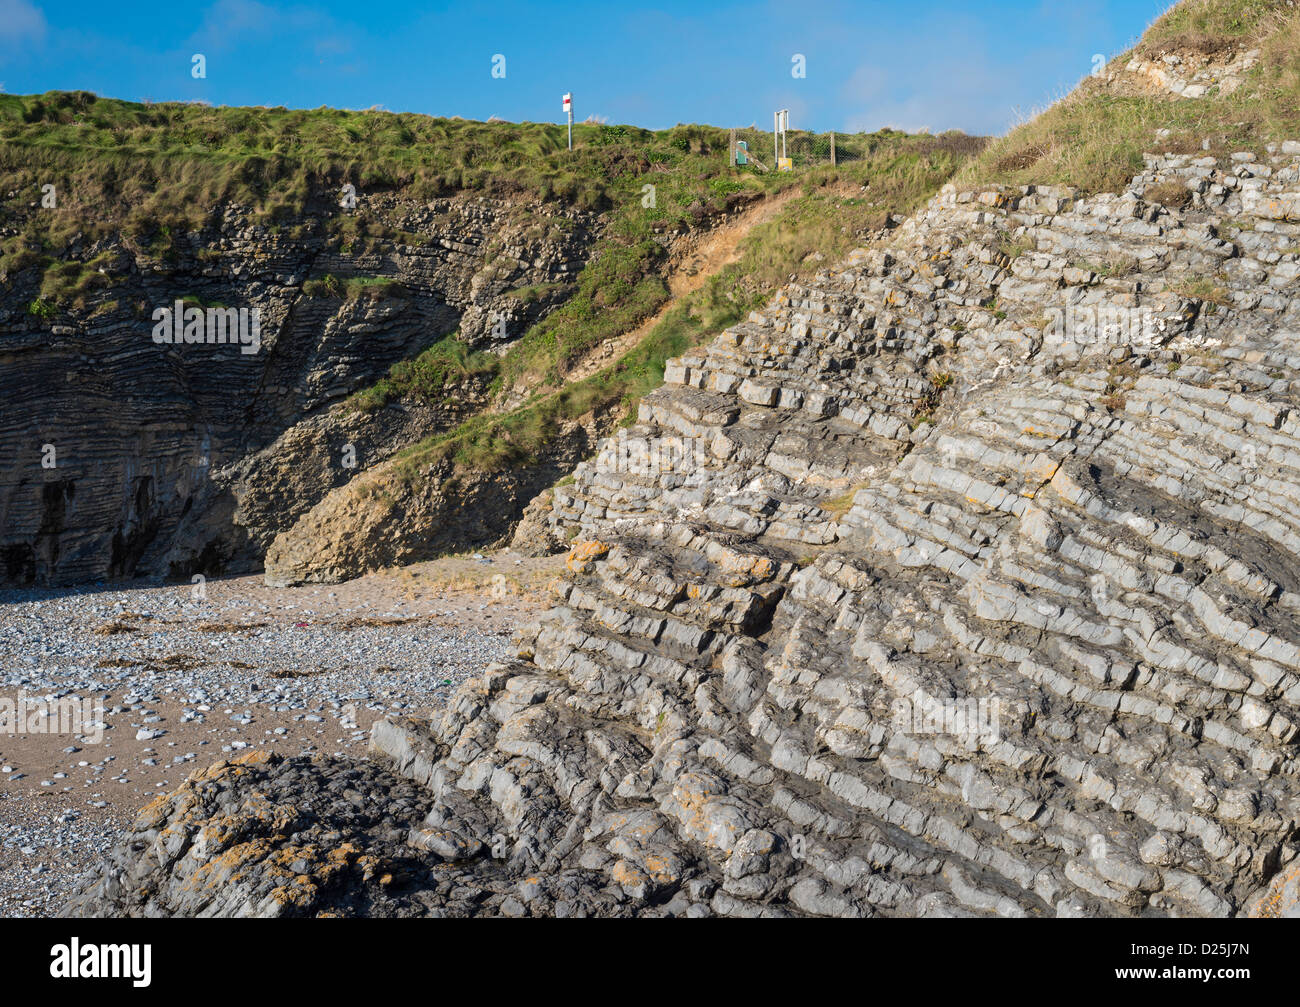 Thinly-bedded silicified Silurian limestones forming cliffs between Portrane and Donabate, County Dublin, Ireland - Stock Image